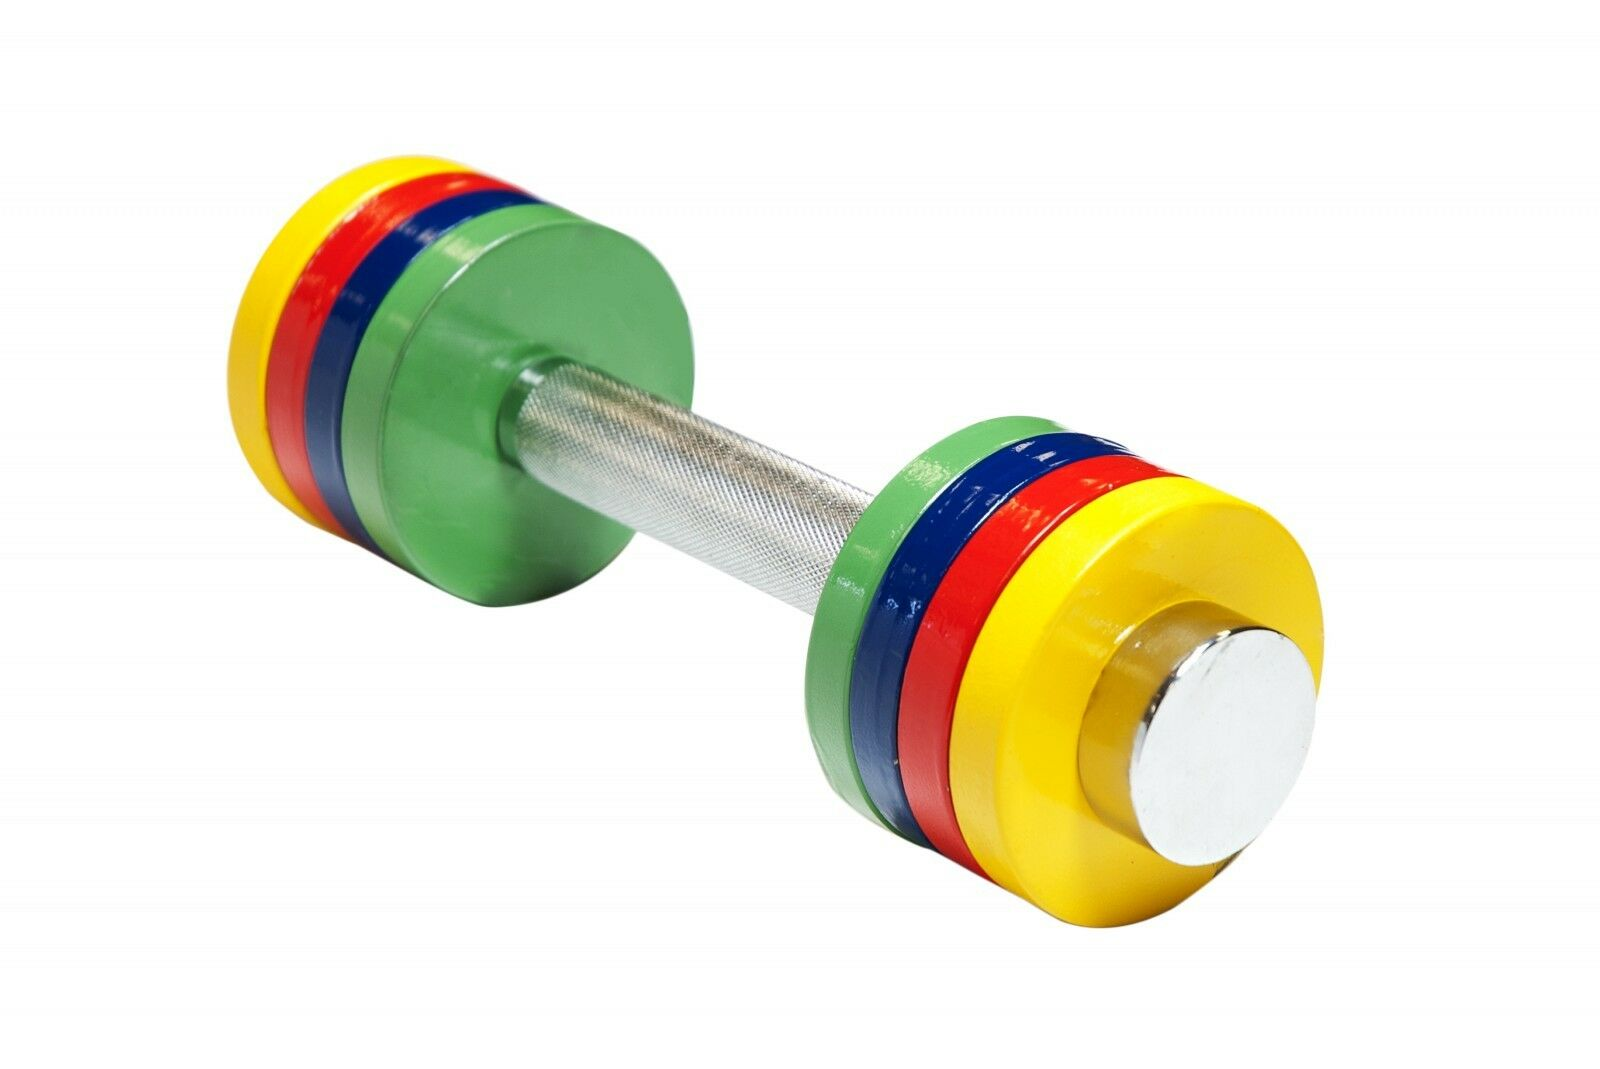 Maha Fitness Adjustable Dumbbell for Strength and Toning Exercises  - 11 lbs.  reasonable price